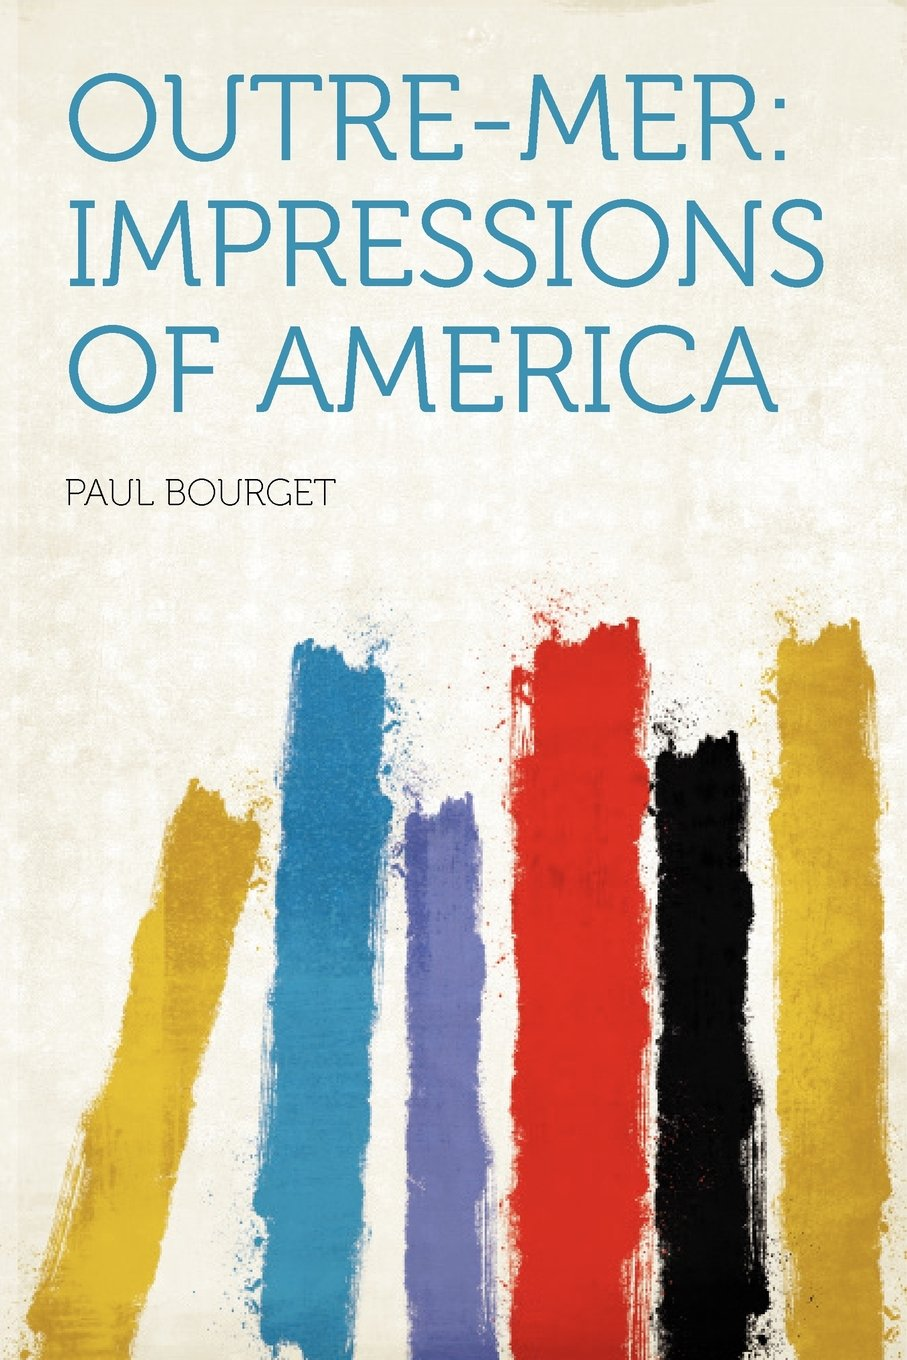 Read Online Outre-mer: Impressions of America PDF